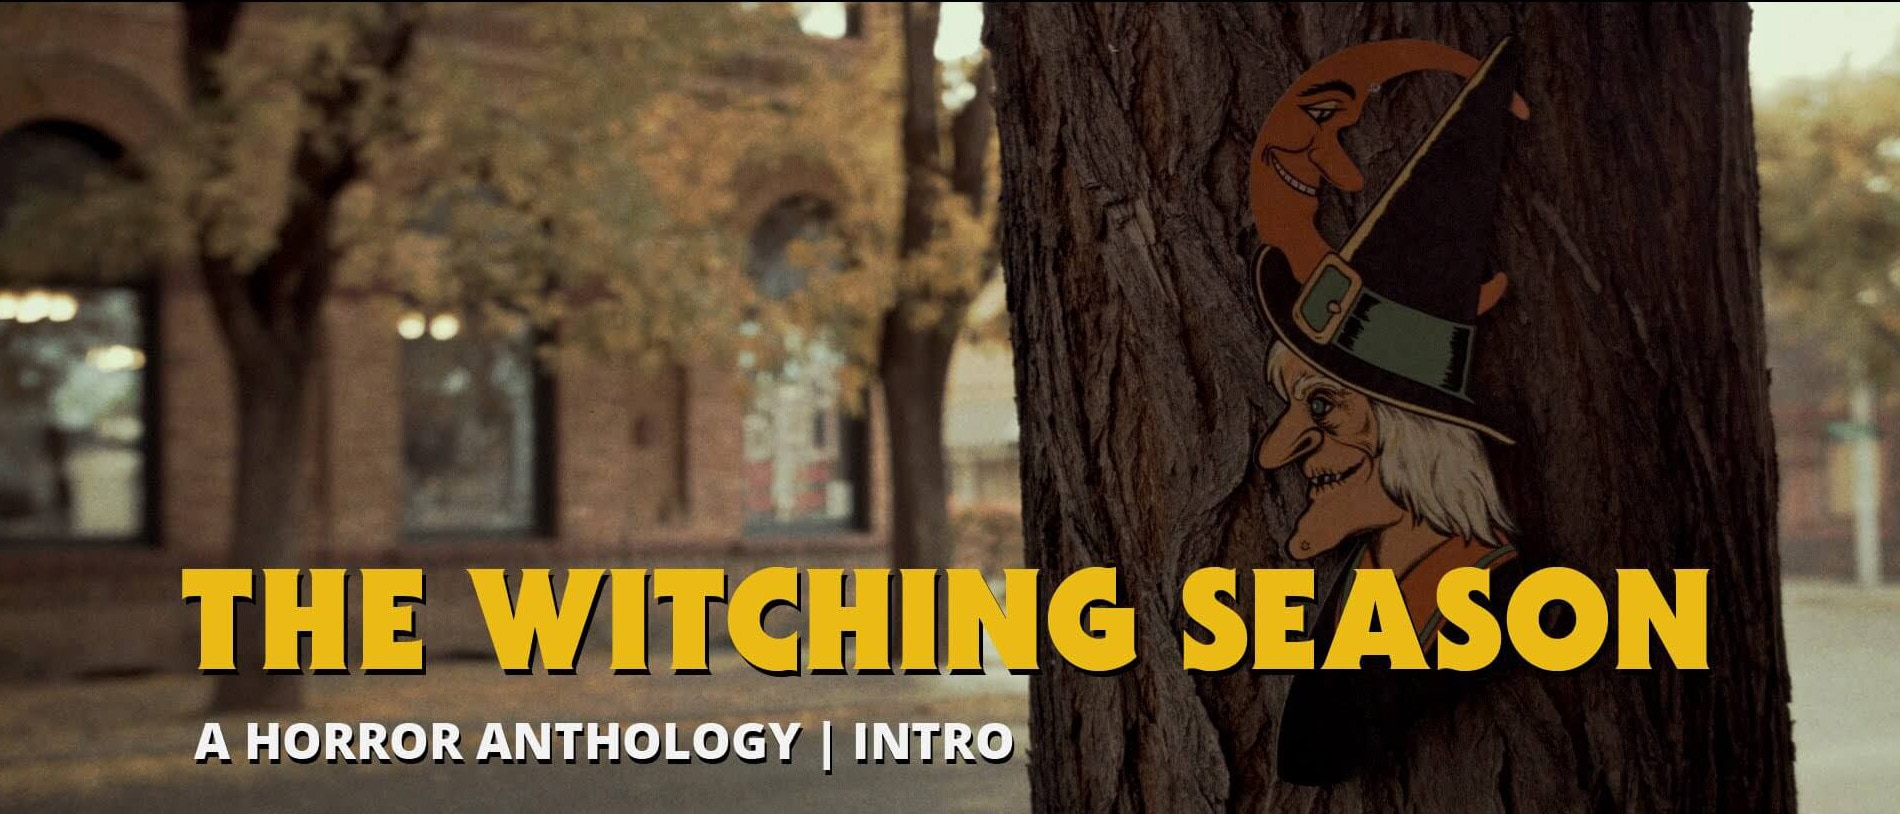 Experience Halloween All Year Round with Web Series The